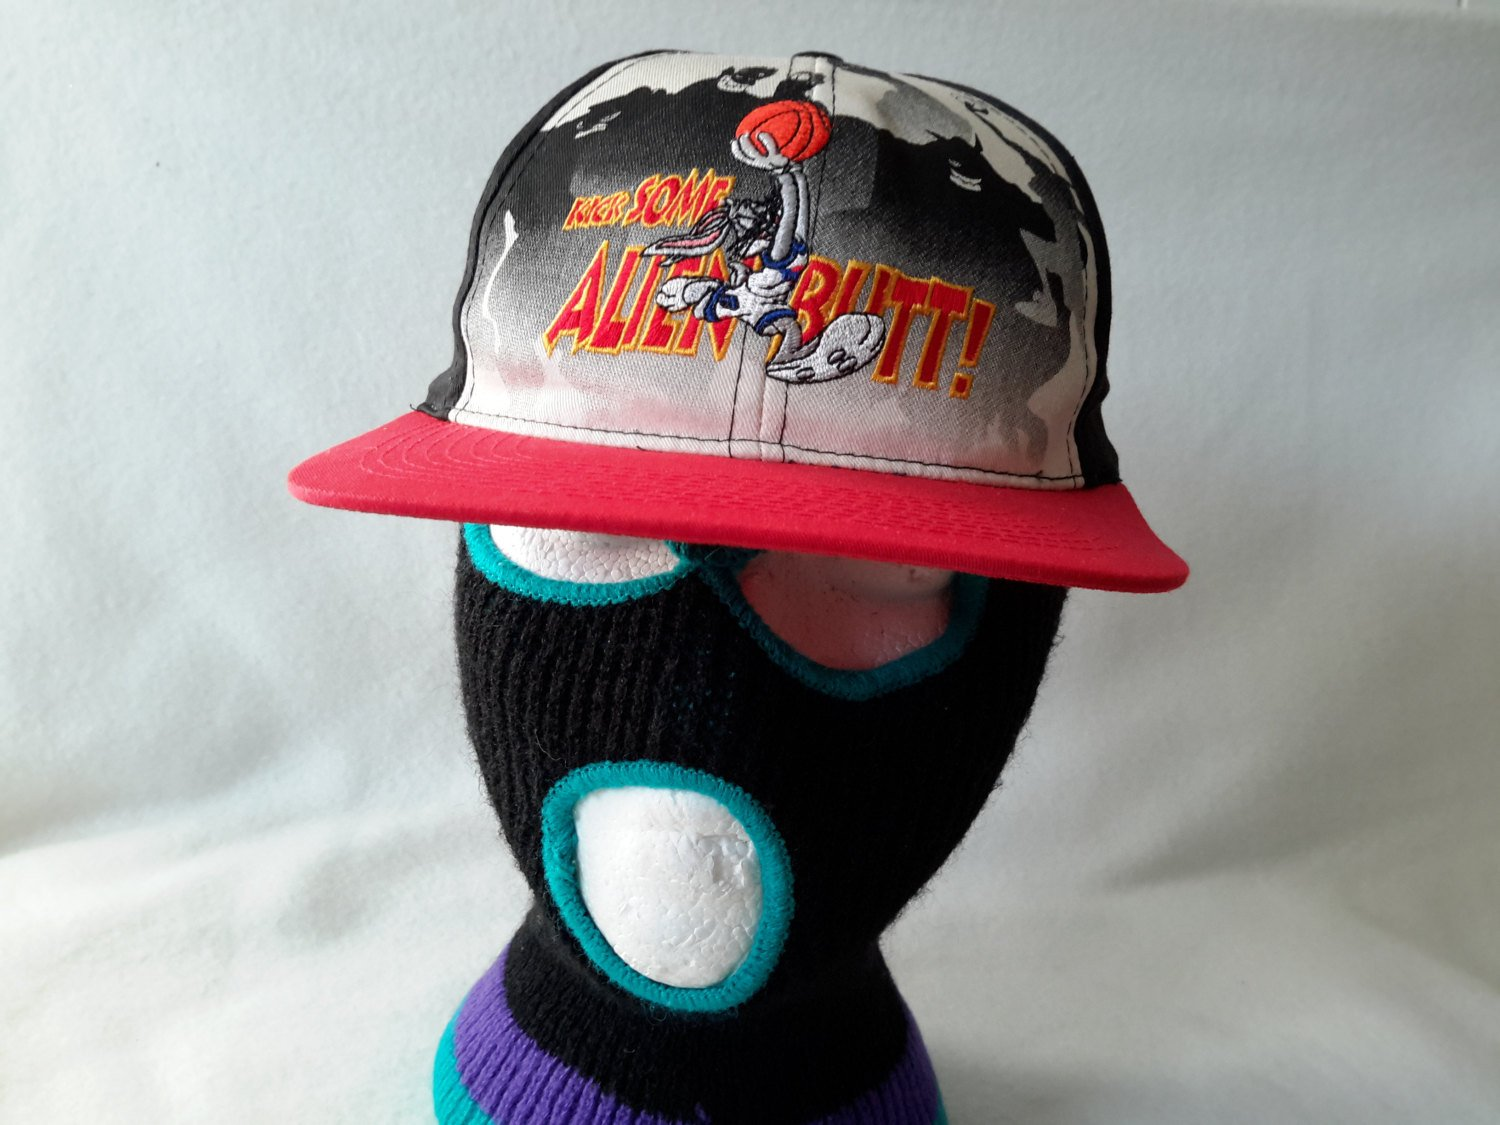 4ad90fd87083 Vtg 1996 Space Jam Kick Some Alien Butt DEADSTOCK Snapback Bugs Bunny  Monstars Looney Tunes